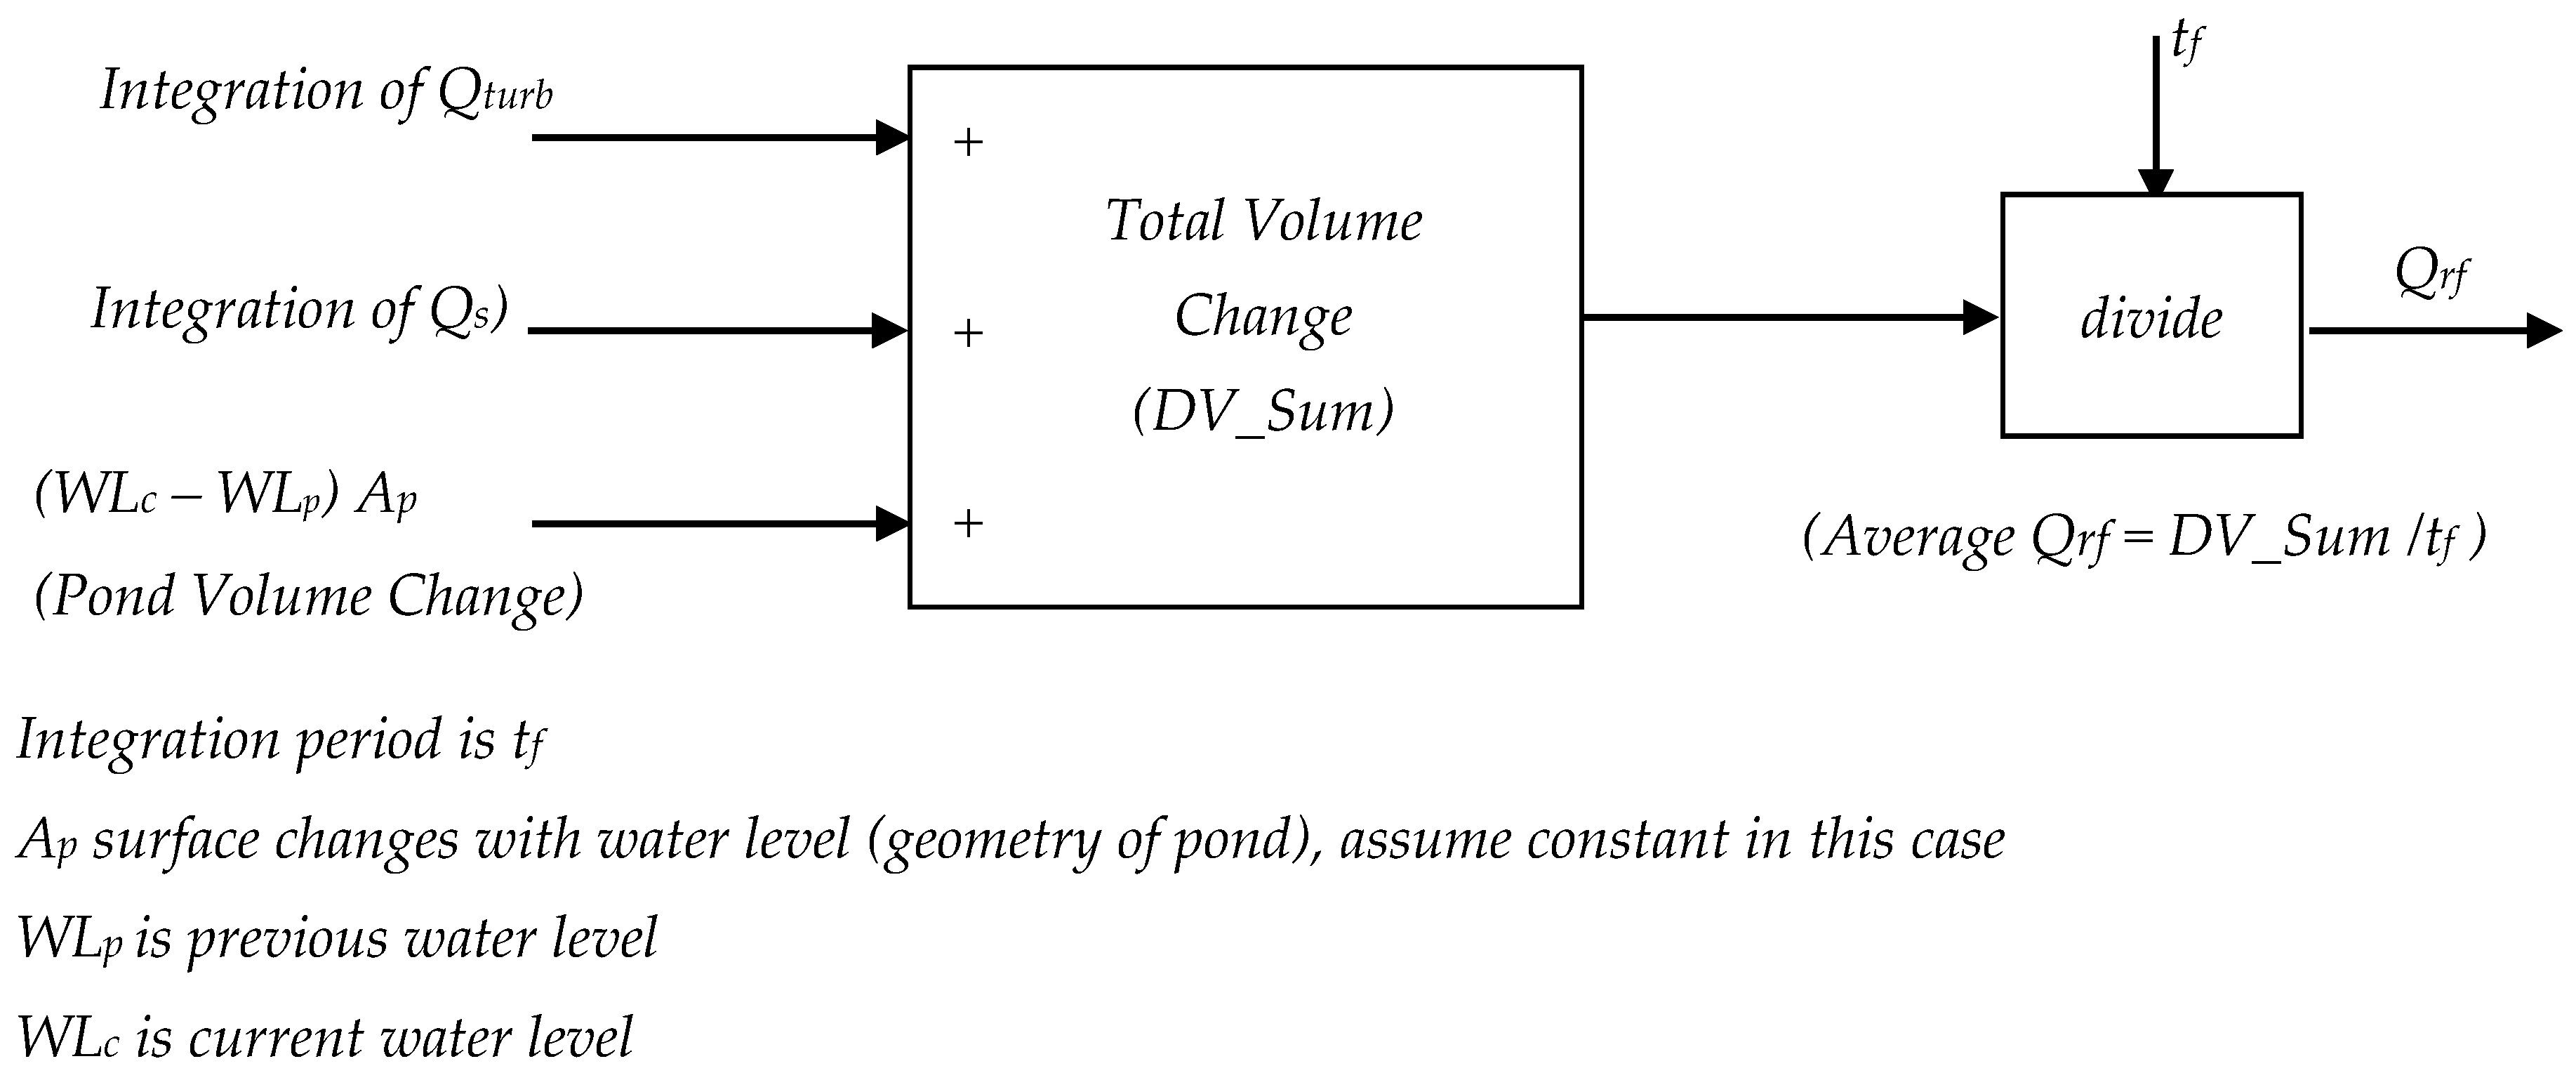 Energies Free Full Text A Computed River Flow Based Turbine Ladder Diagram Of Plc Is Divided Into Figure 10 01717 G004 4